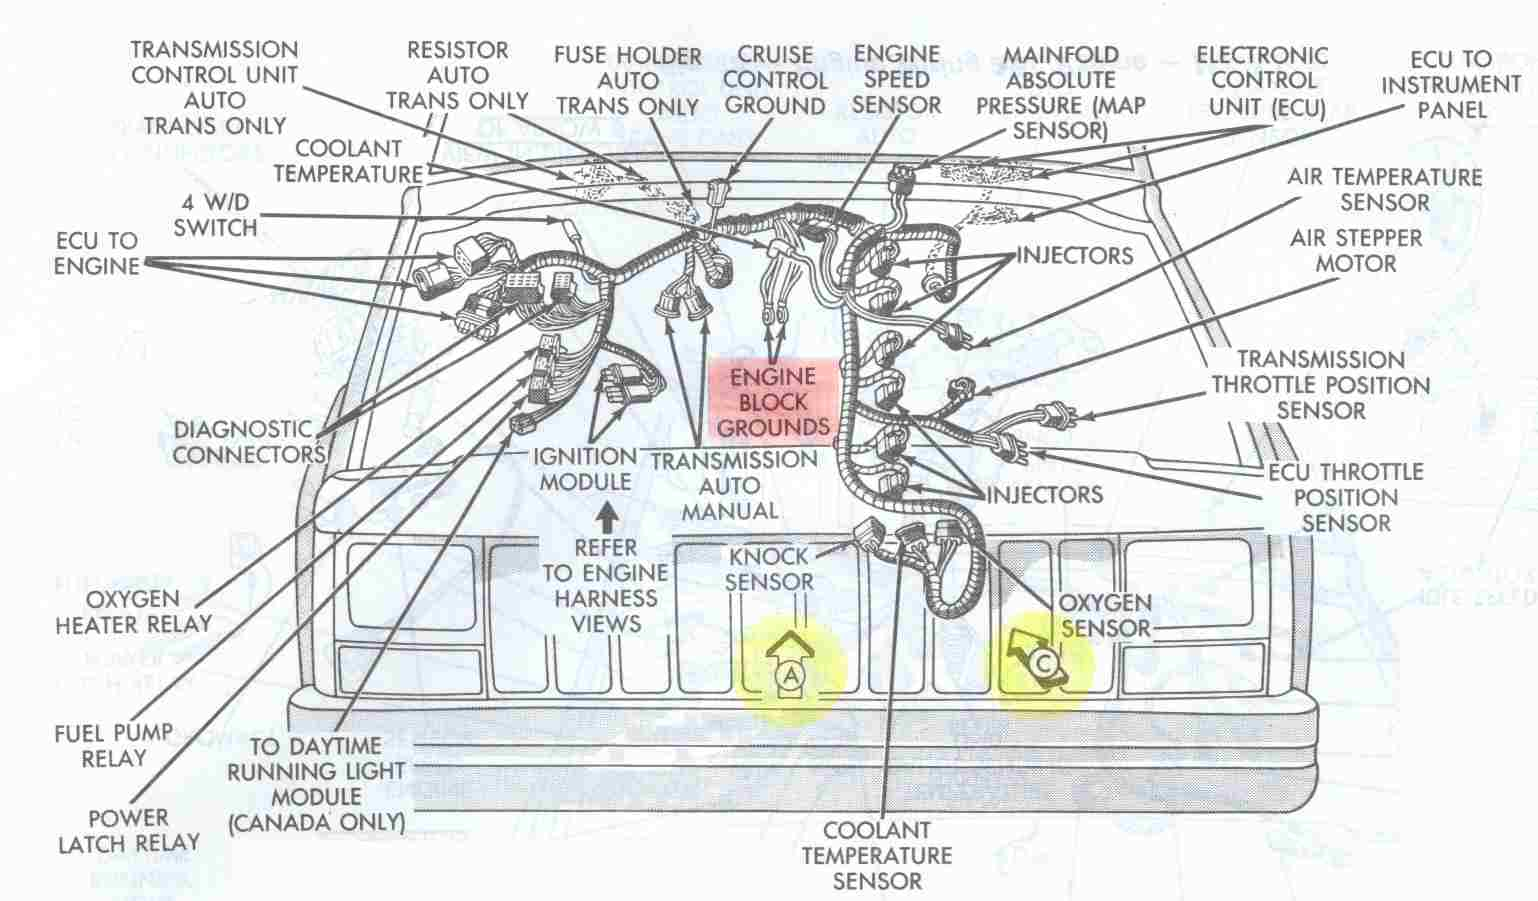 Electrical_Engine_Ground_Points_Overview jeep cherokee electrical diagnosing erratic behavior of engine 1998 jeep cherokee wiring harness diagram at readyjetset.co